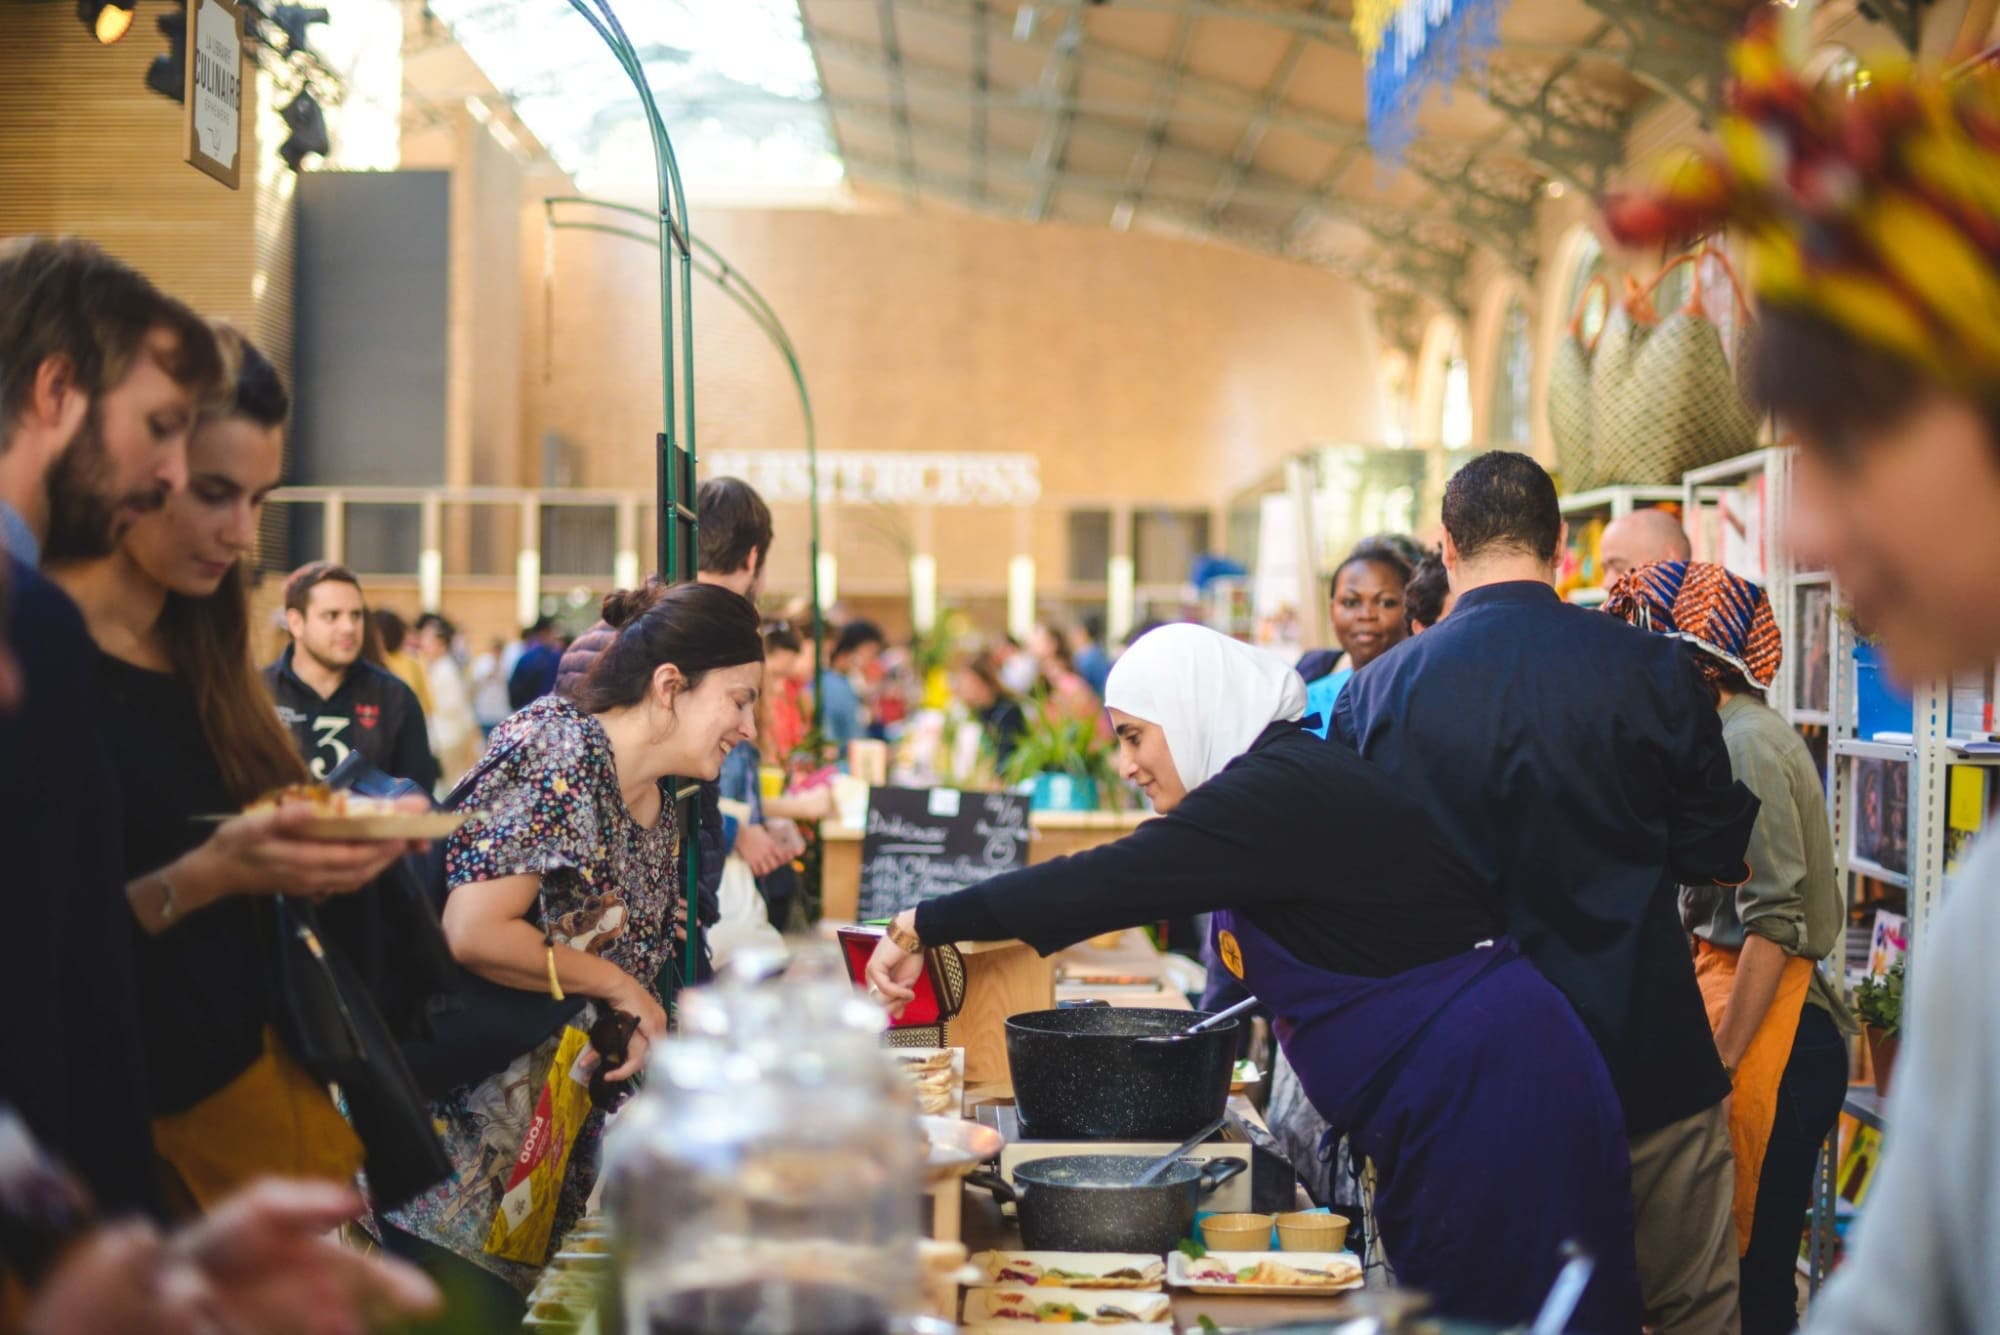 The Carreau du Temple market in Paris will welcome the 2018 Refugee Food Festival.